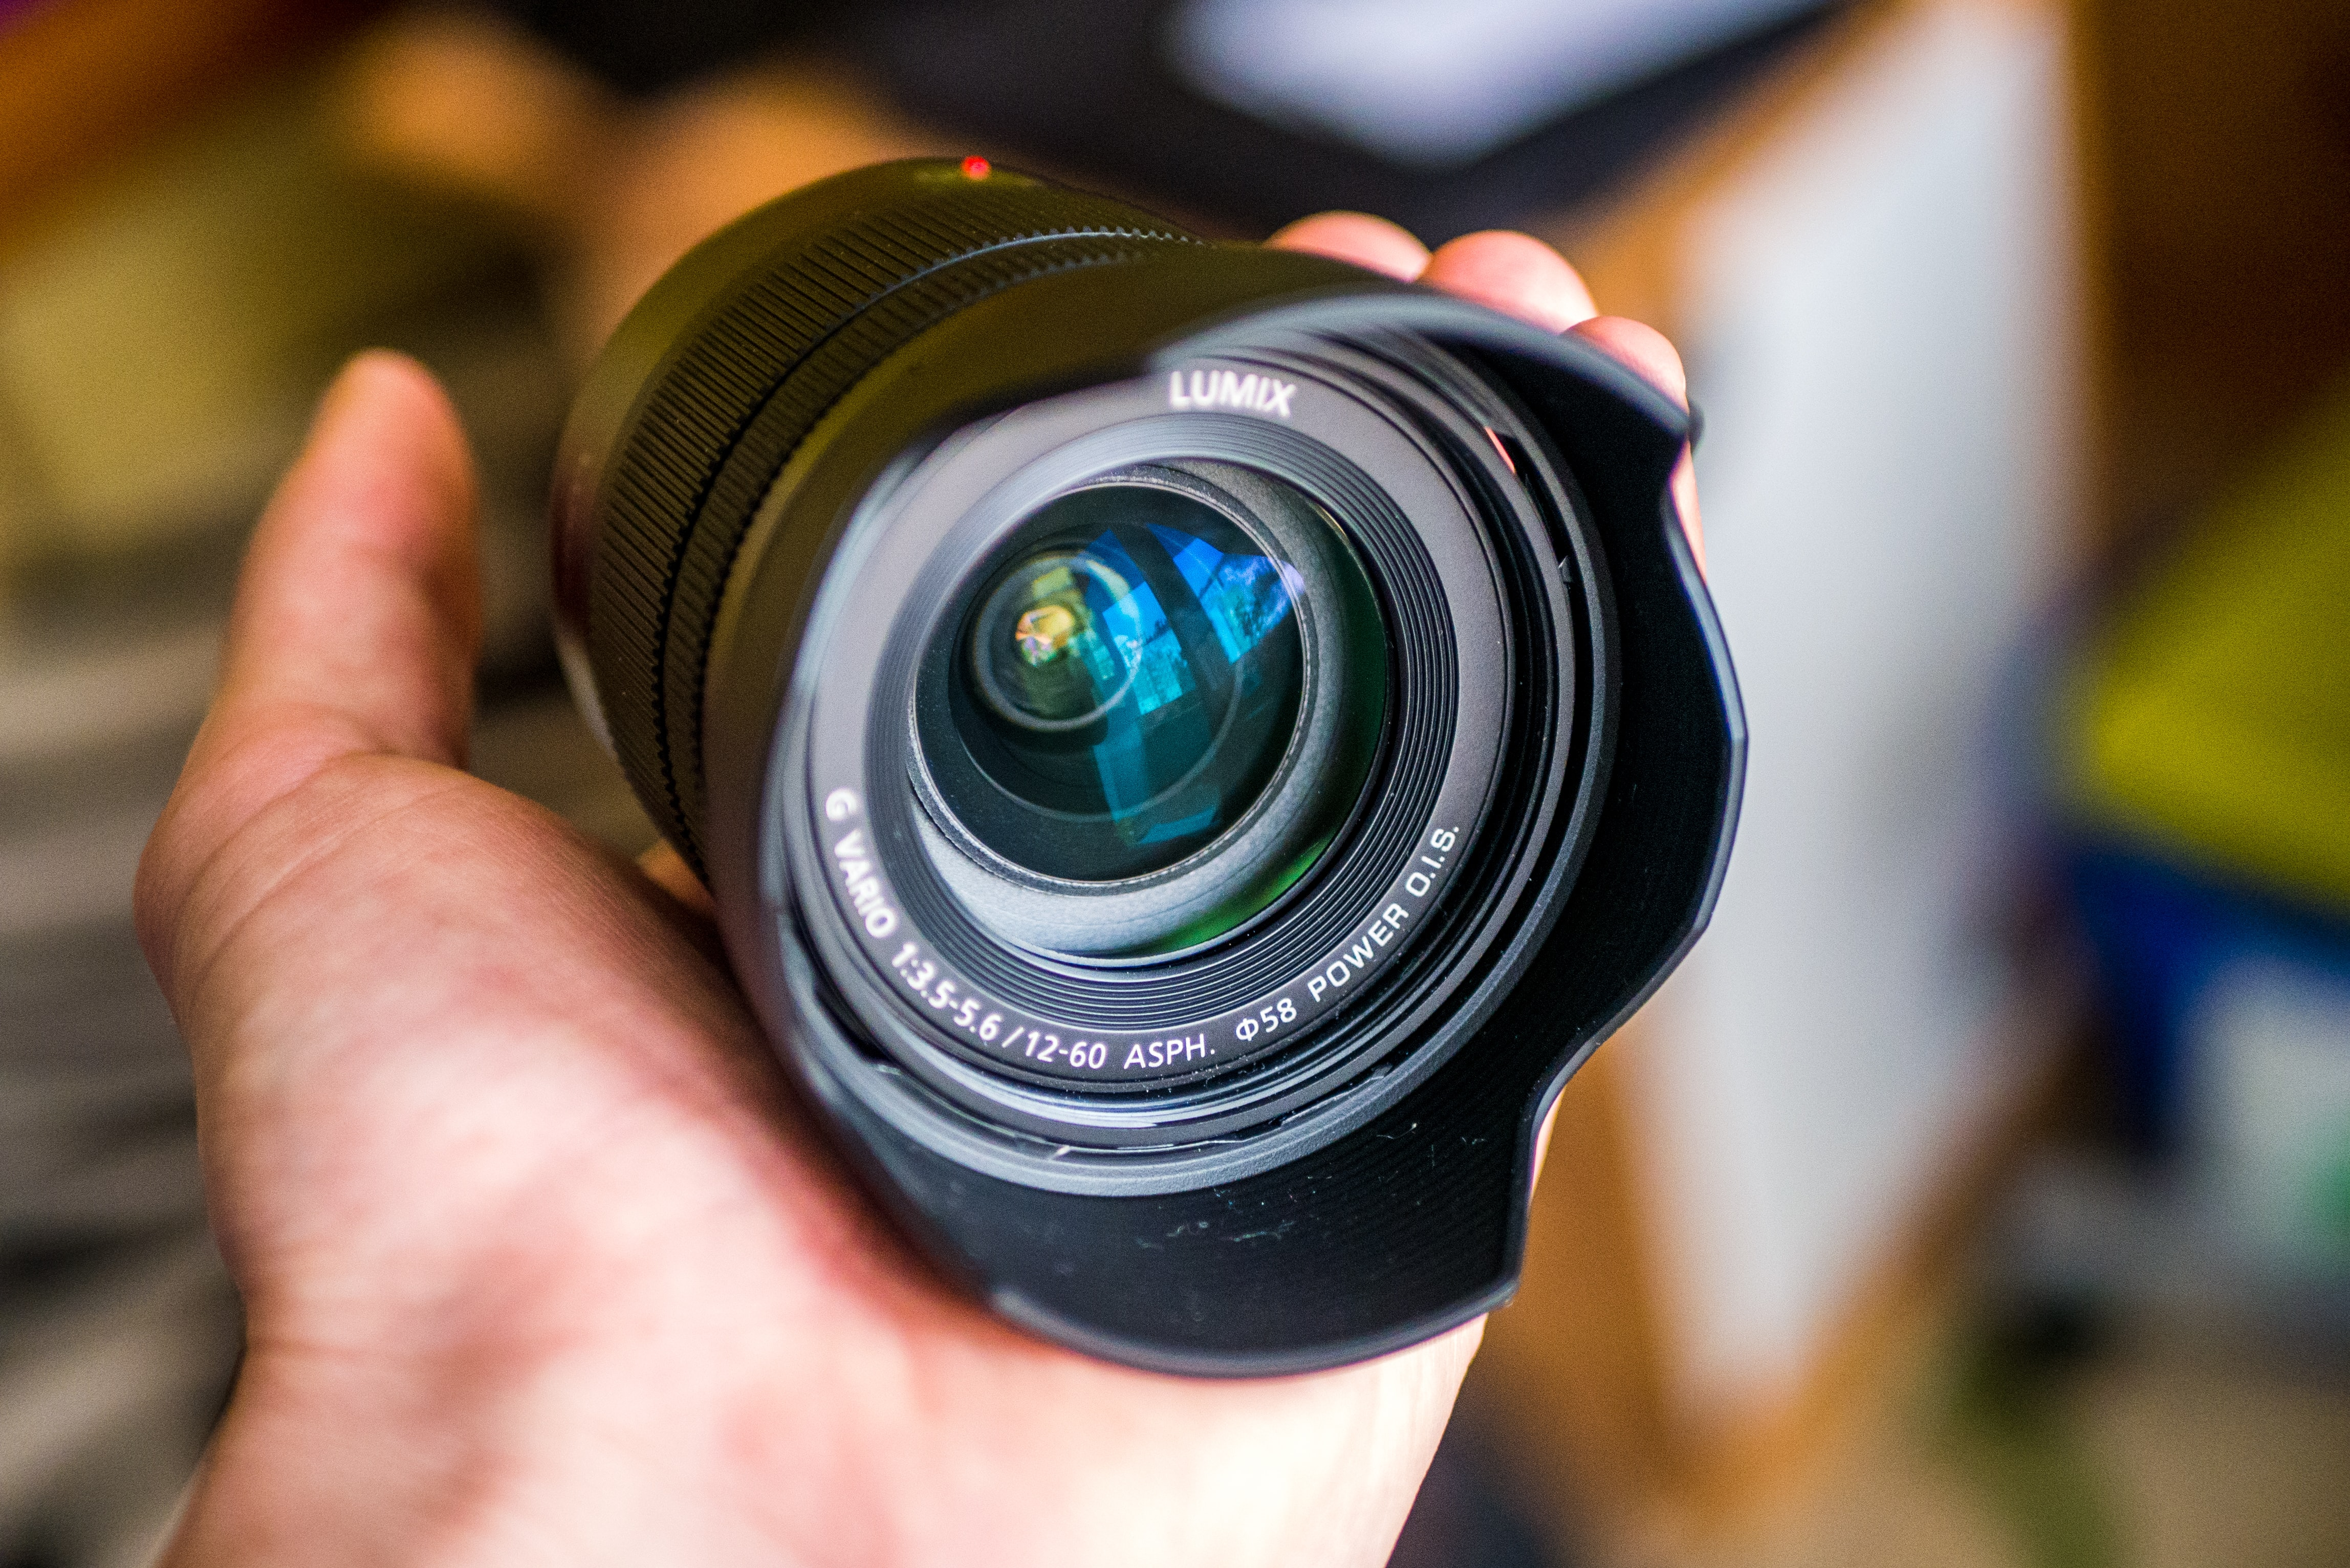 selective focus of person holding Lumix camera lens